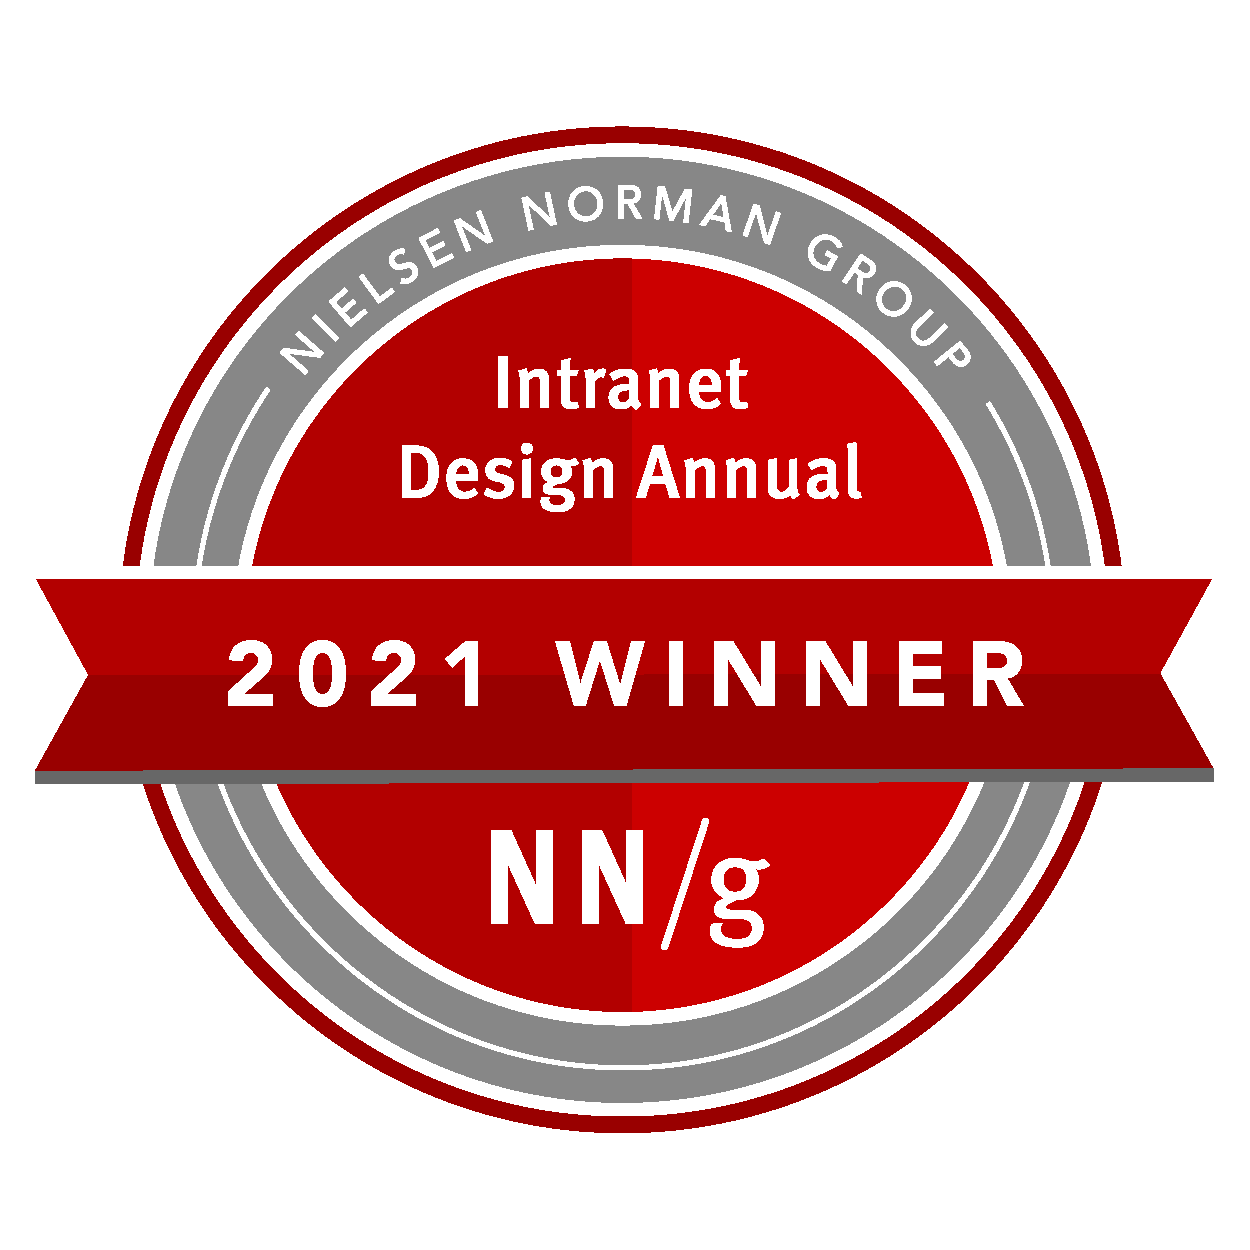 Red round badge with text: Nielsen Norman Group Intranet Design Annual 2021 Winner